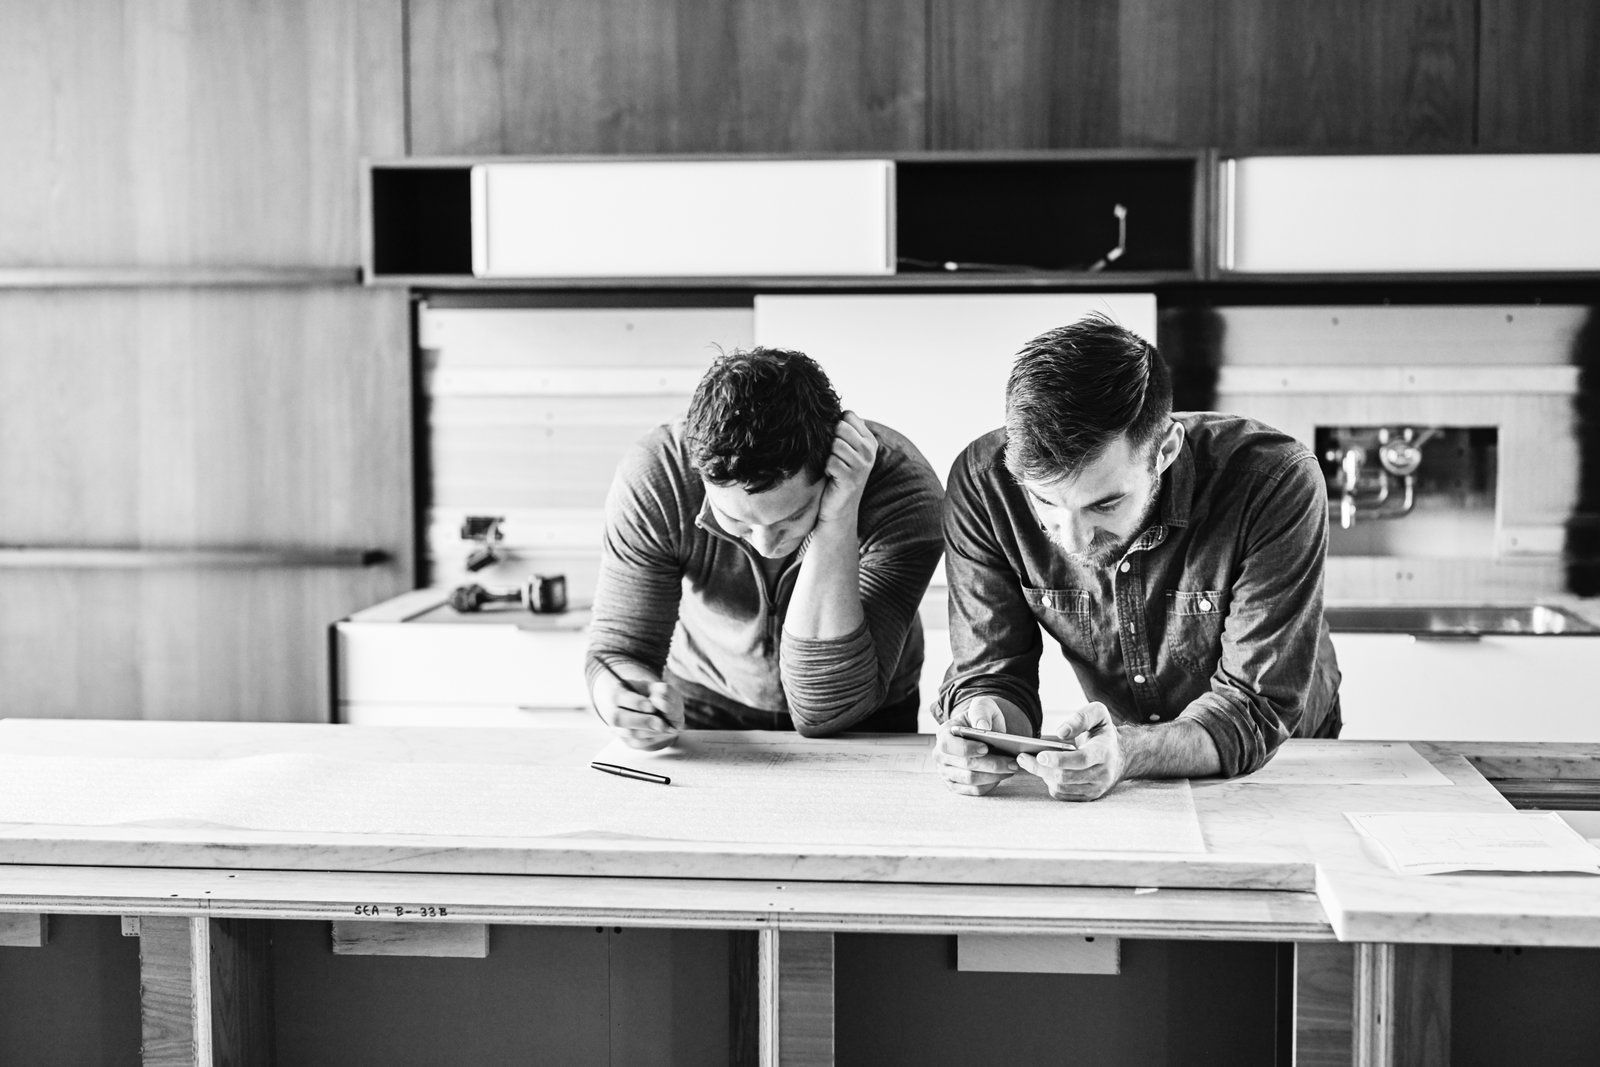 After designers, engineers, and craftspeople mingle and share ideas, they take their findings back to the drawing board where they aim to constantly improve existing products while dreaming up new components.  Photo 2 of 8 in What Goes On Behind-the-Scenes at Henrybuilt's Seattle Test Kitchen